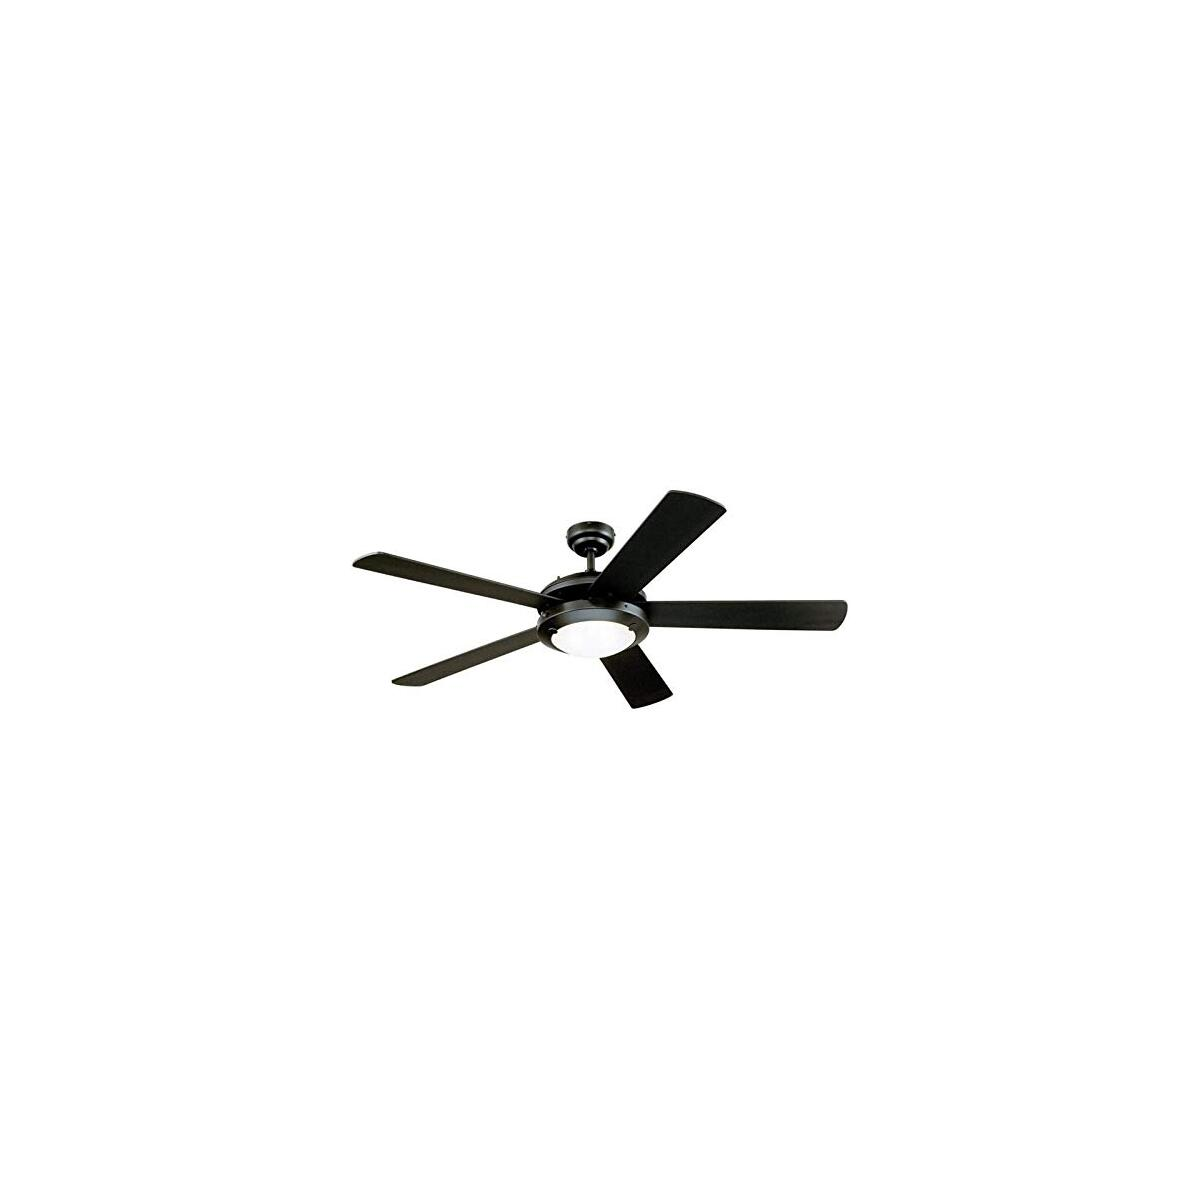 52-Inch Comet Indoor Ceiling Fan in Matte Black Finish with Dimmable LED Light Fixture in Frosted Glass with Reversible Matte Black/Marble Blades